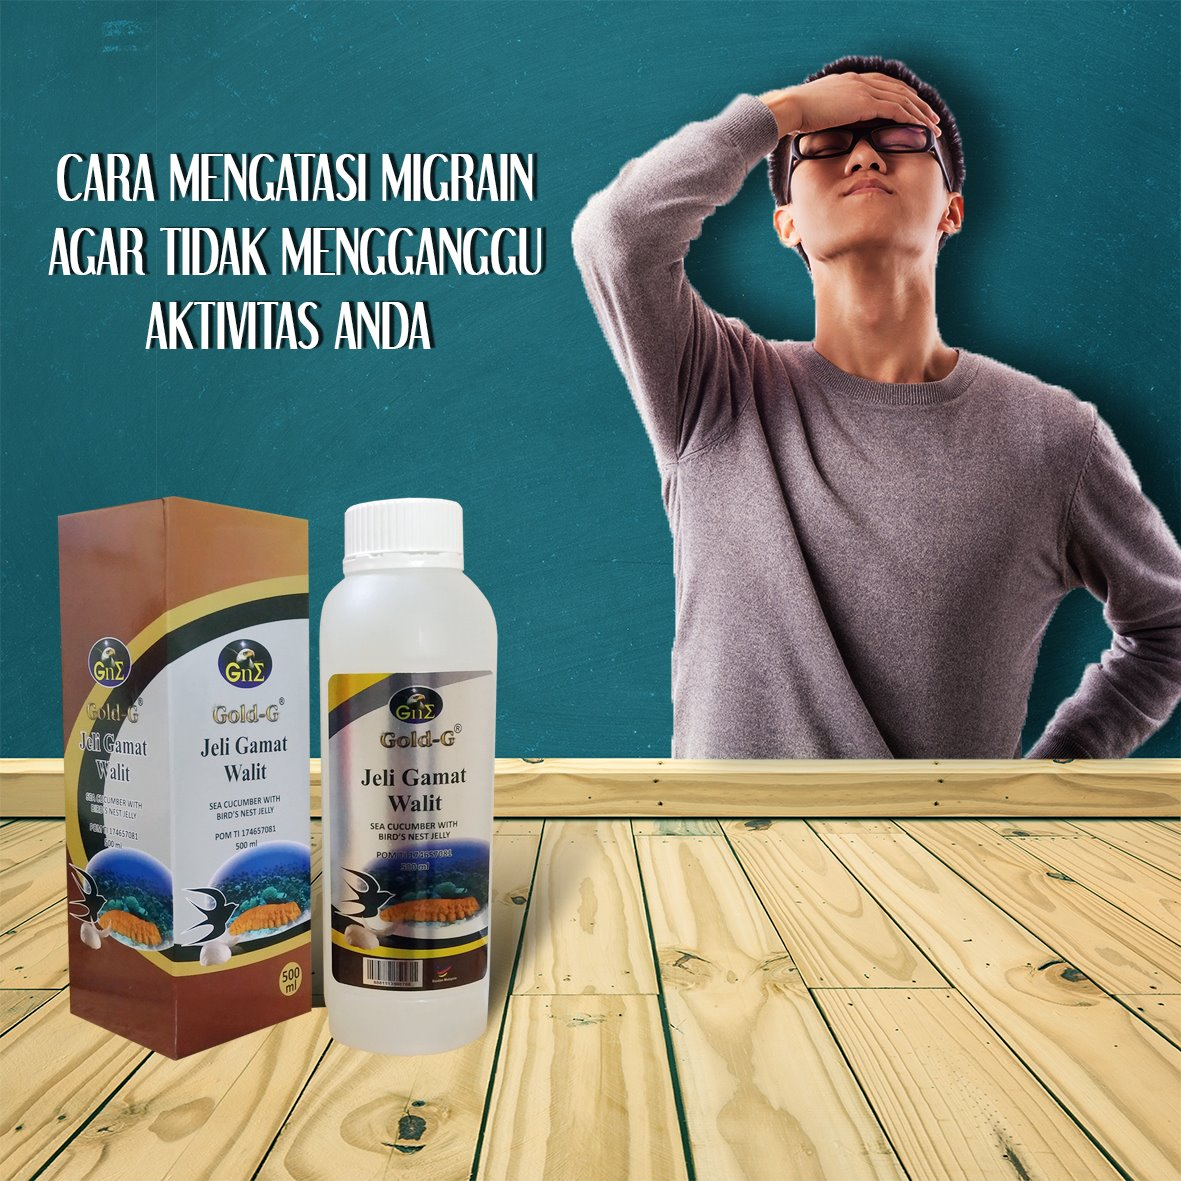 Obat Ampuh Migrain Gold G Jelly Gamat Walet